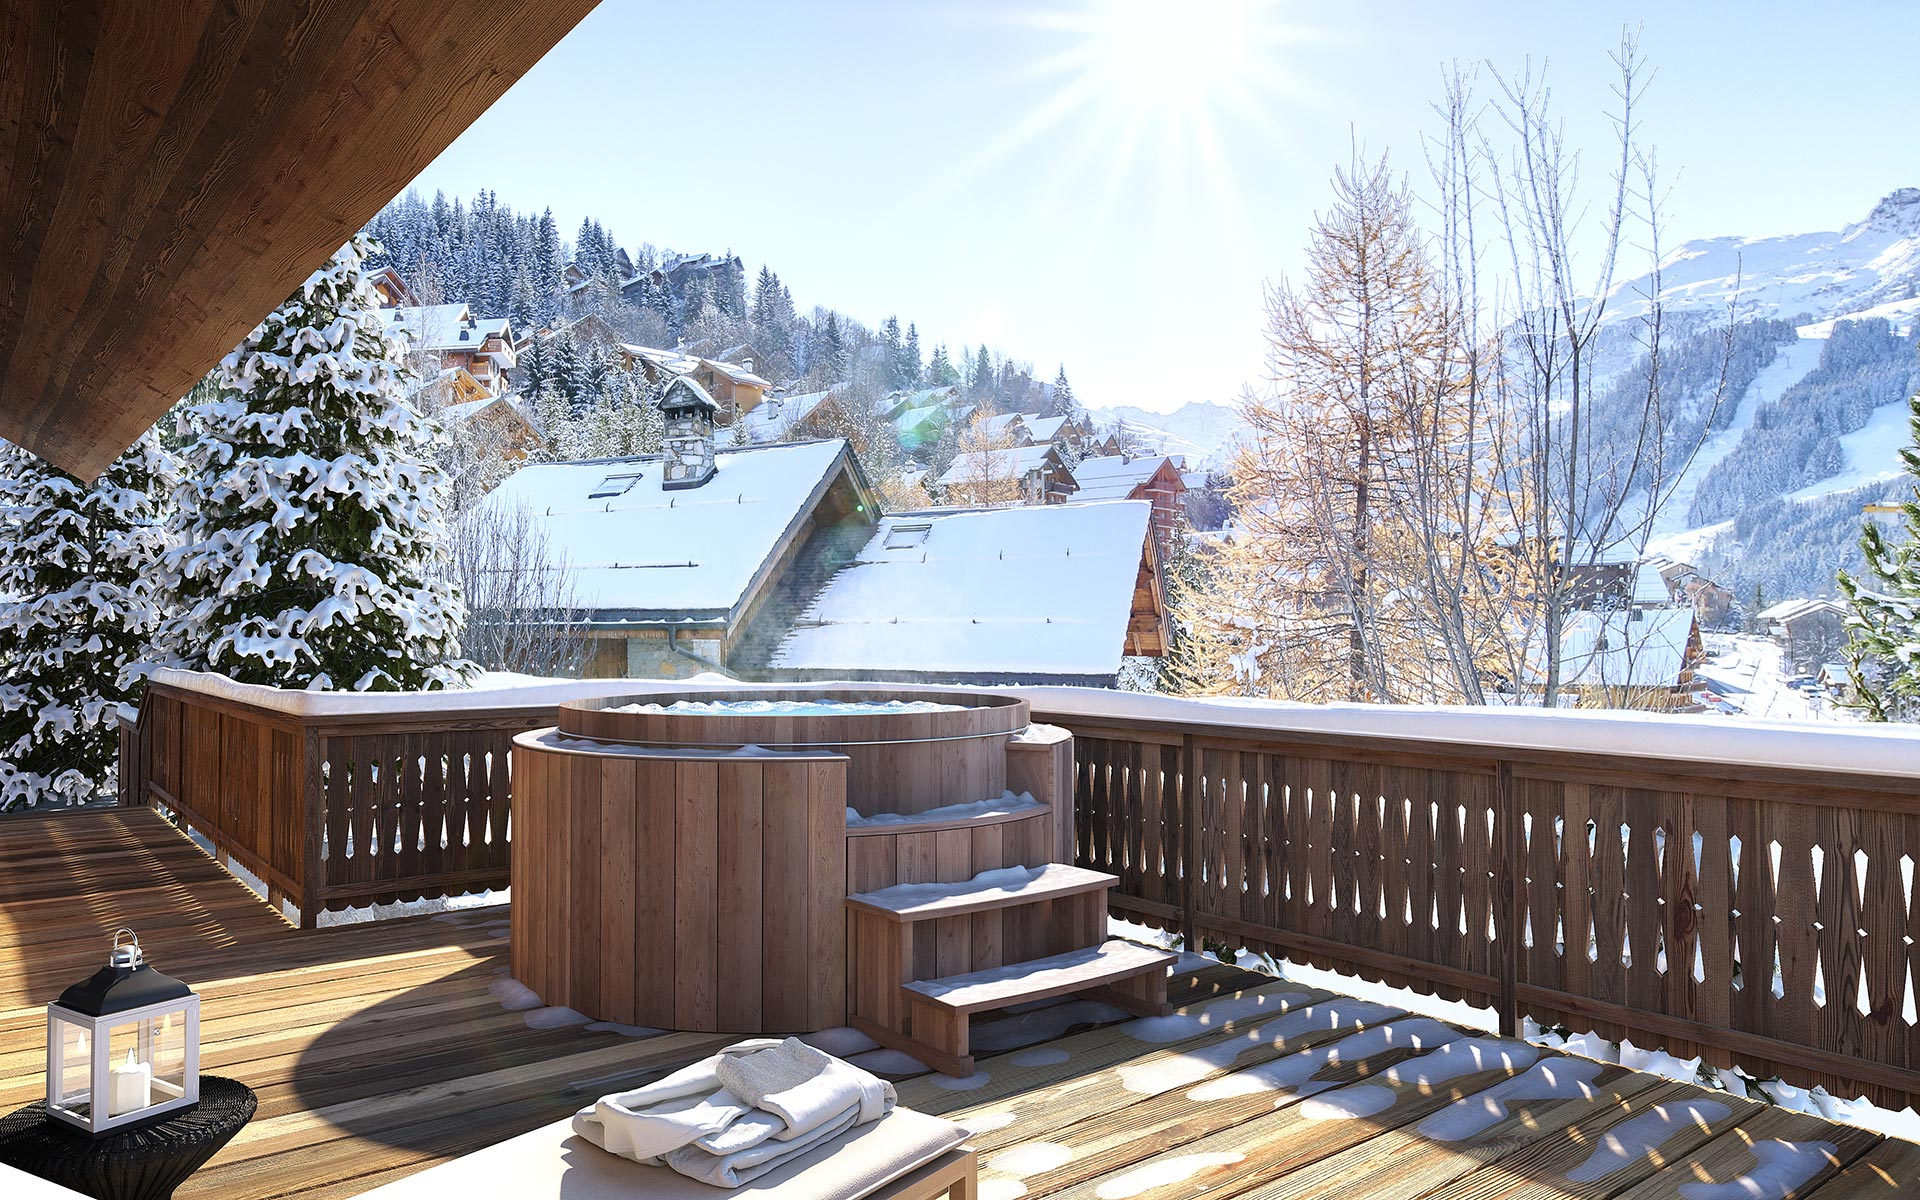 3D perspective of a jacuzzi on a luxury chalet terrace